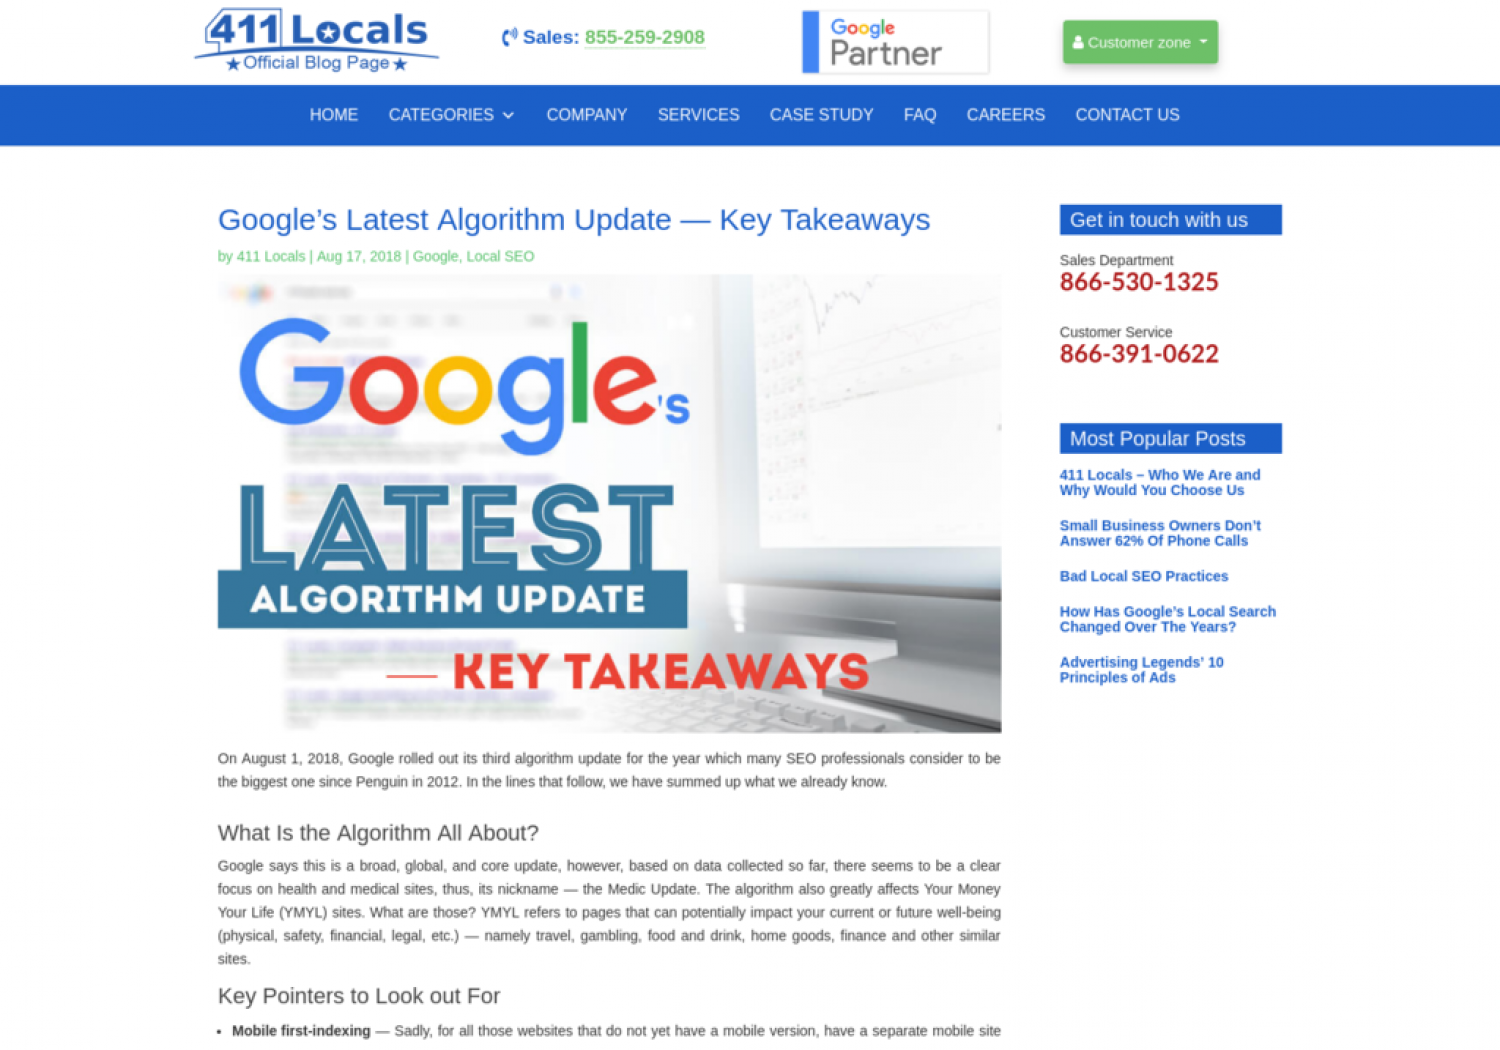 Google's Latest Algorithm Update — Key Takeaways Infographic